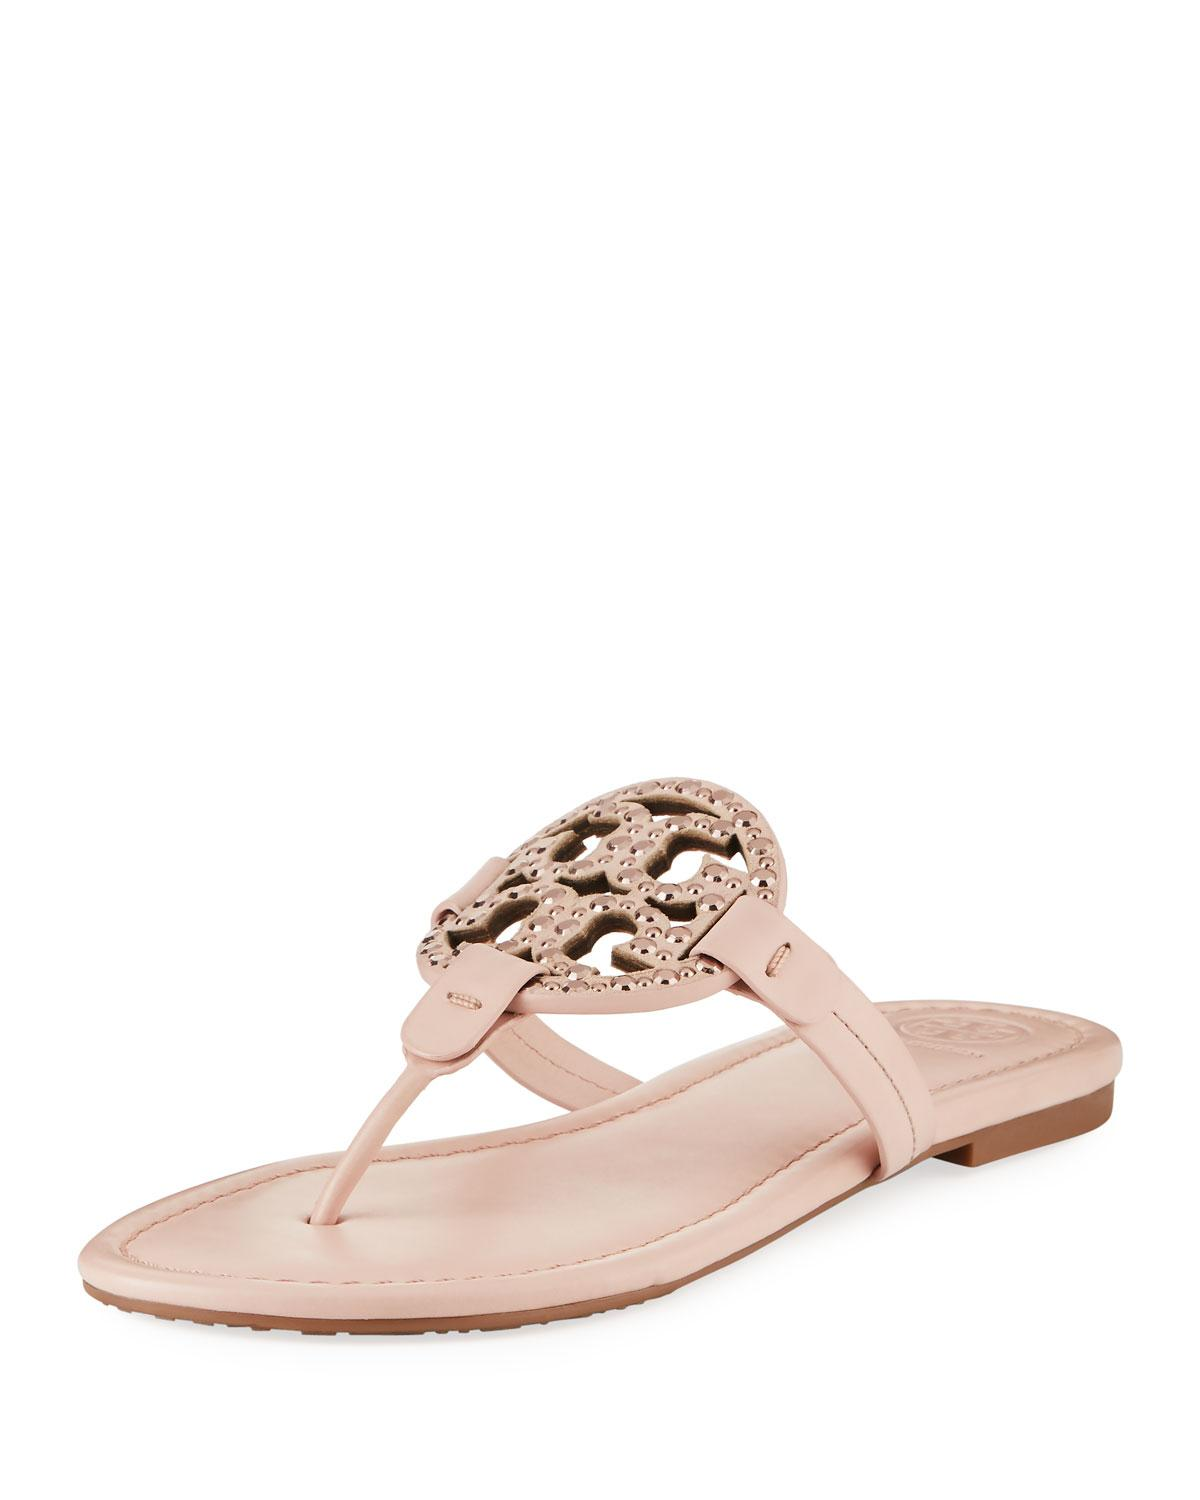 de2b29604065f Tory Burch Miller Medallion Embellished Flat Sandal In Sea Shell Pink